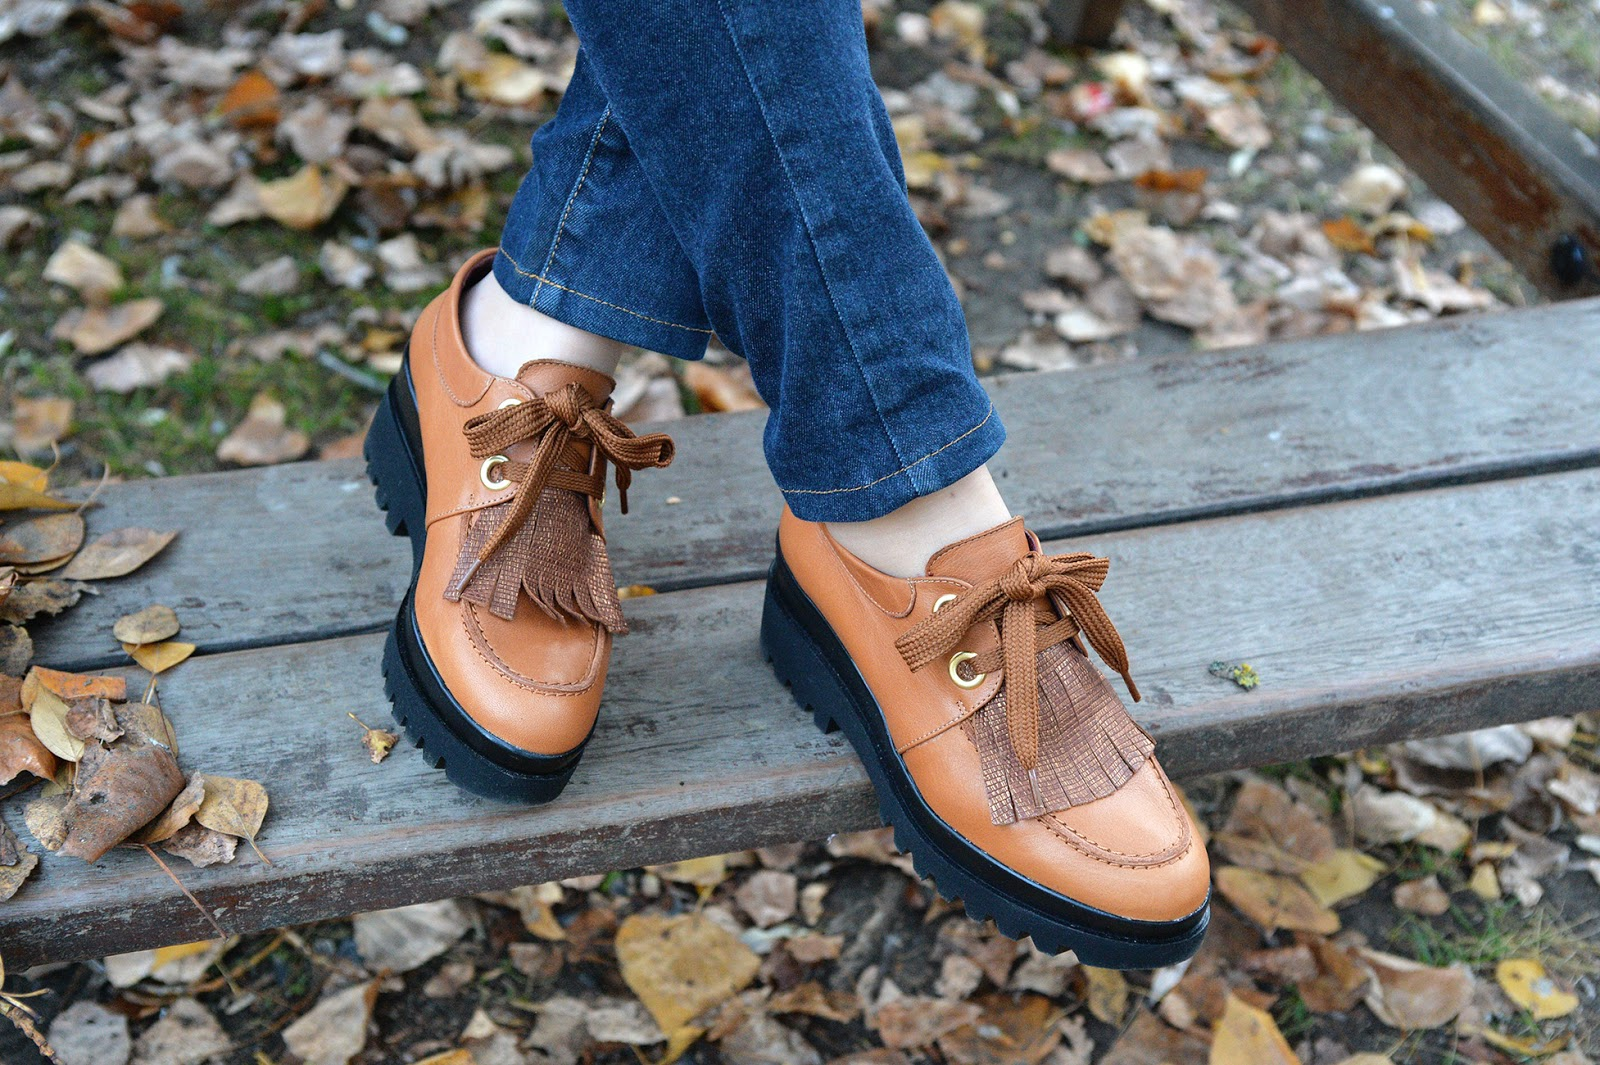 platform oxford shoes fringe fashion blogger